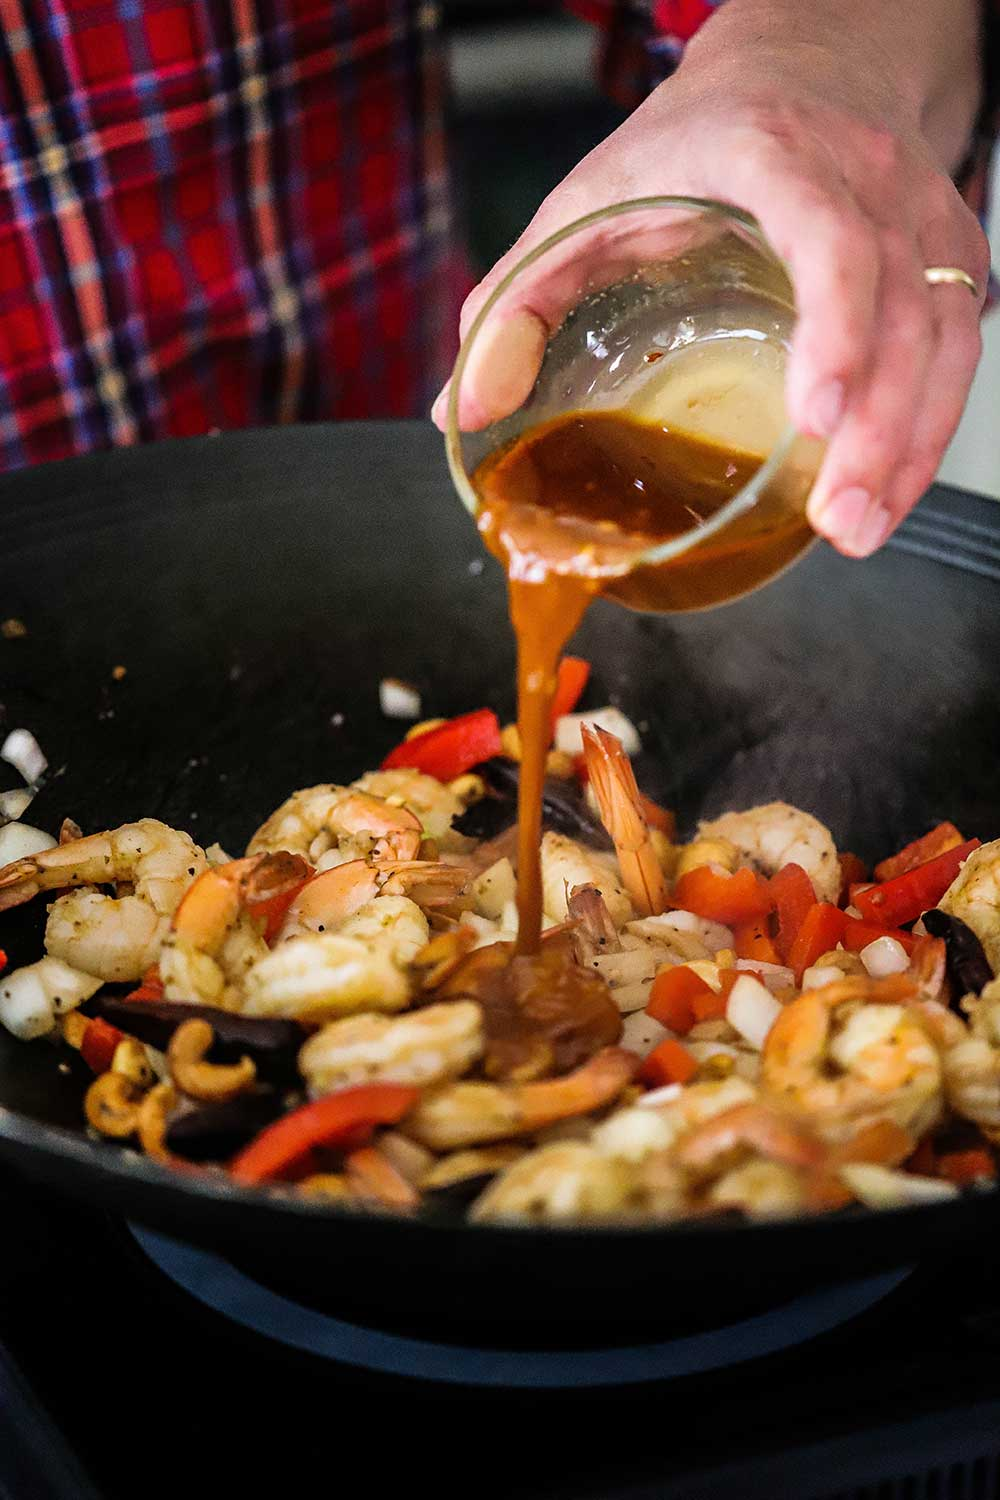 A person pouring kung pao sauce from a small glass bowl into a wok filled with sautéd shrimp, onions, red bell peppers, garlic, and dried chilies.